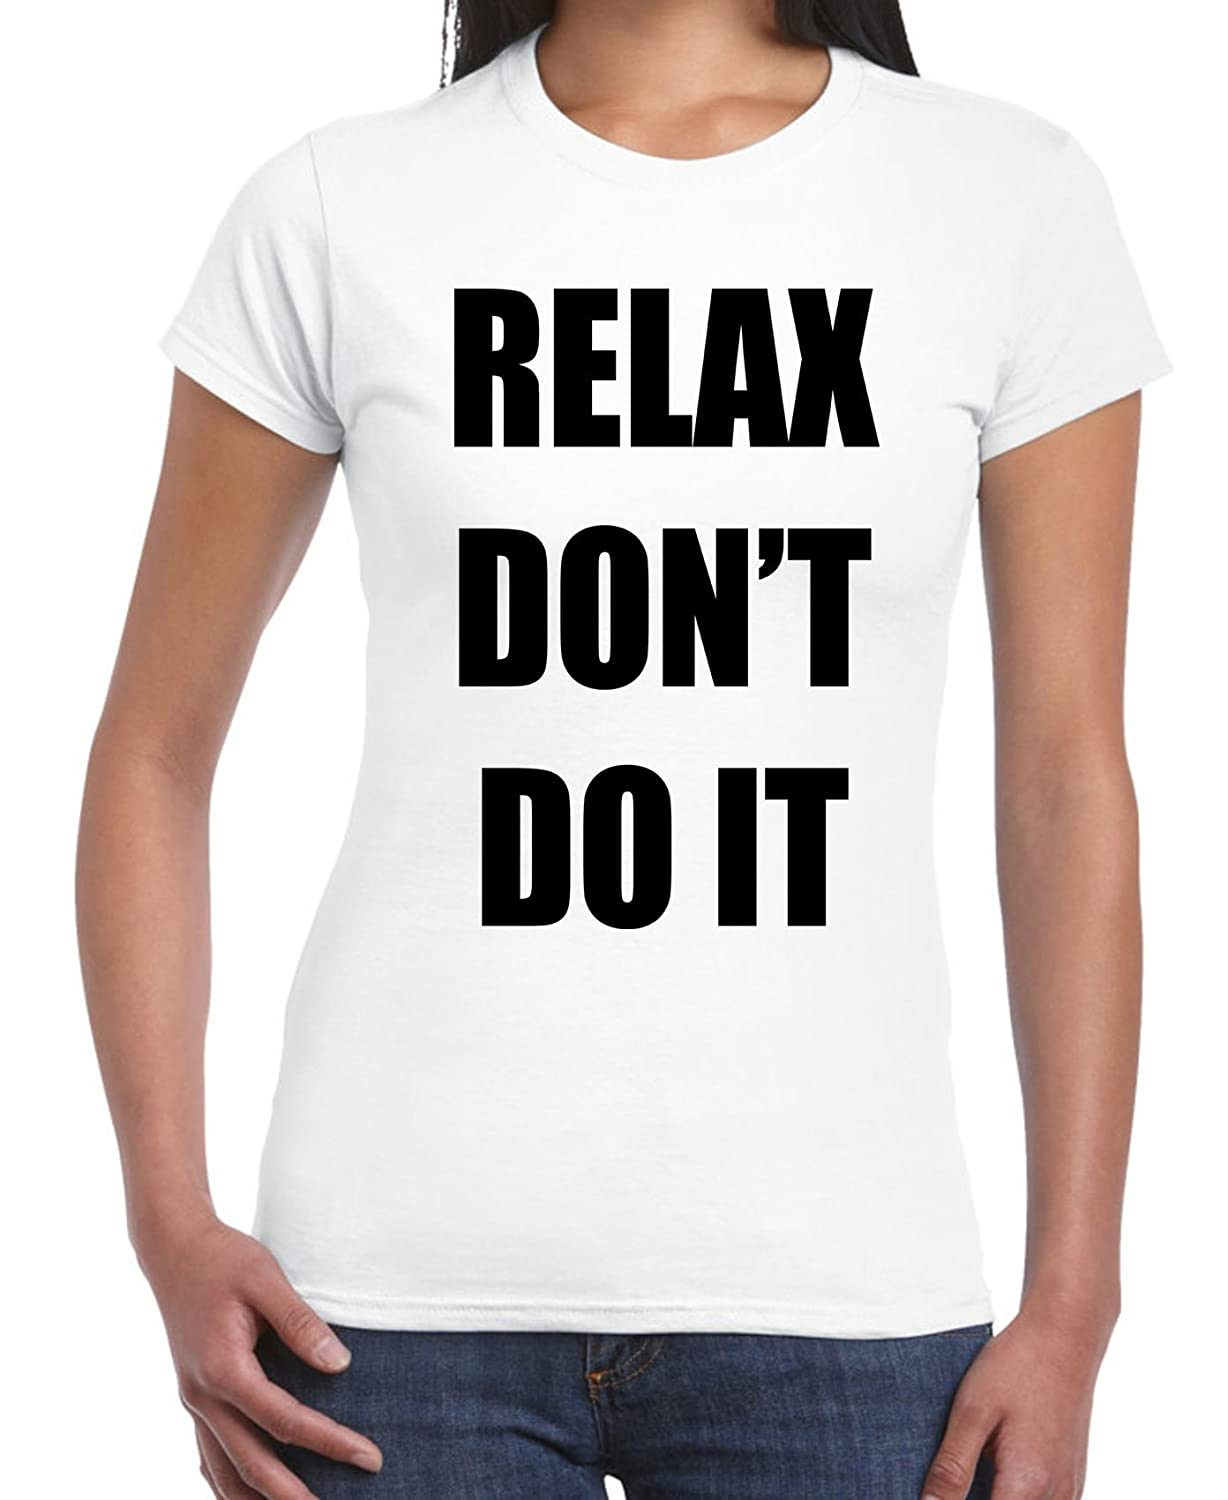 Women's Relax Don't Do It Pink or White T-shirt, S to XL